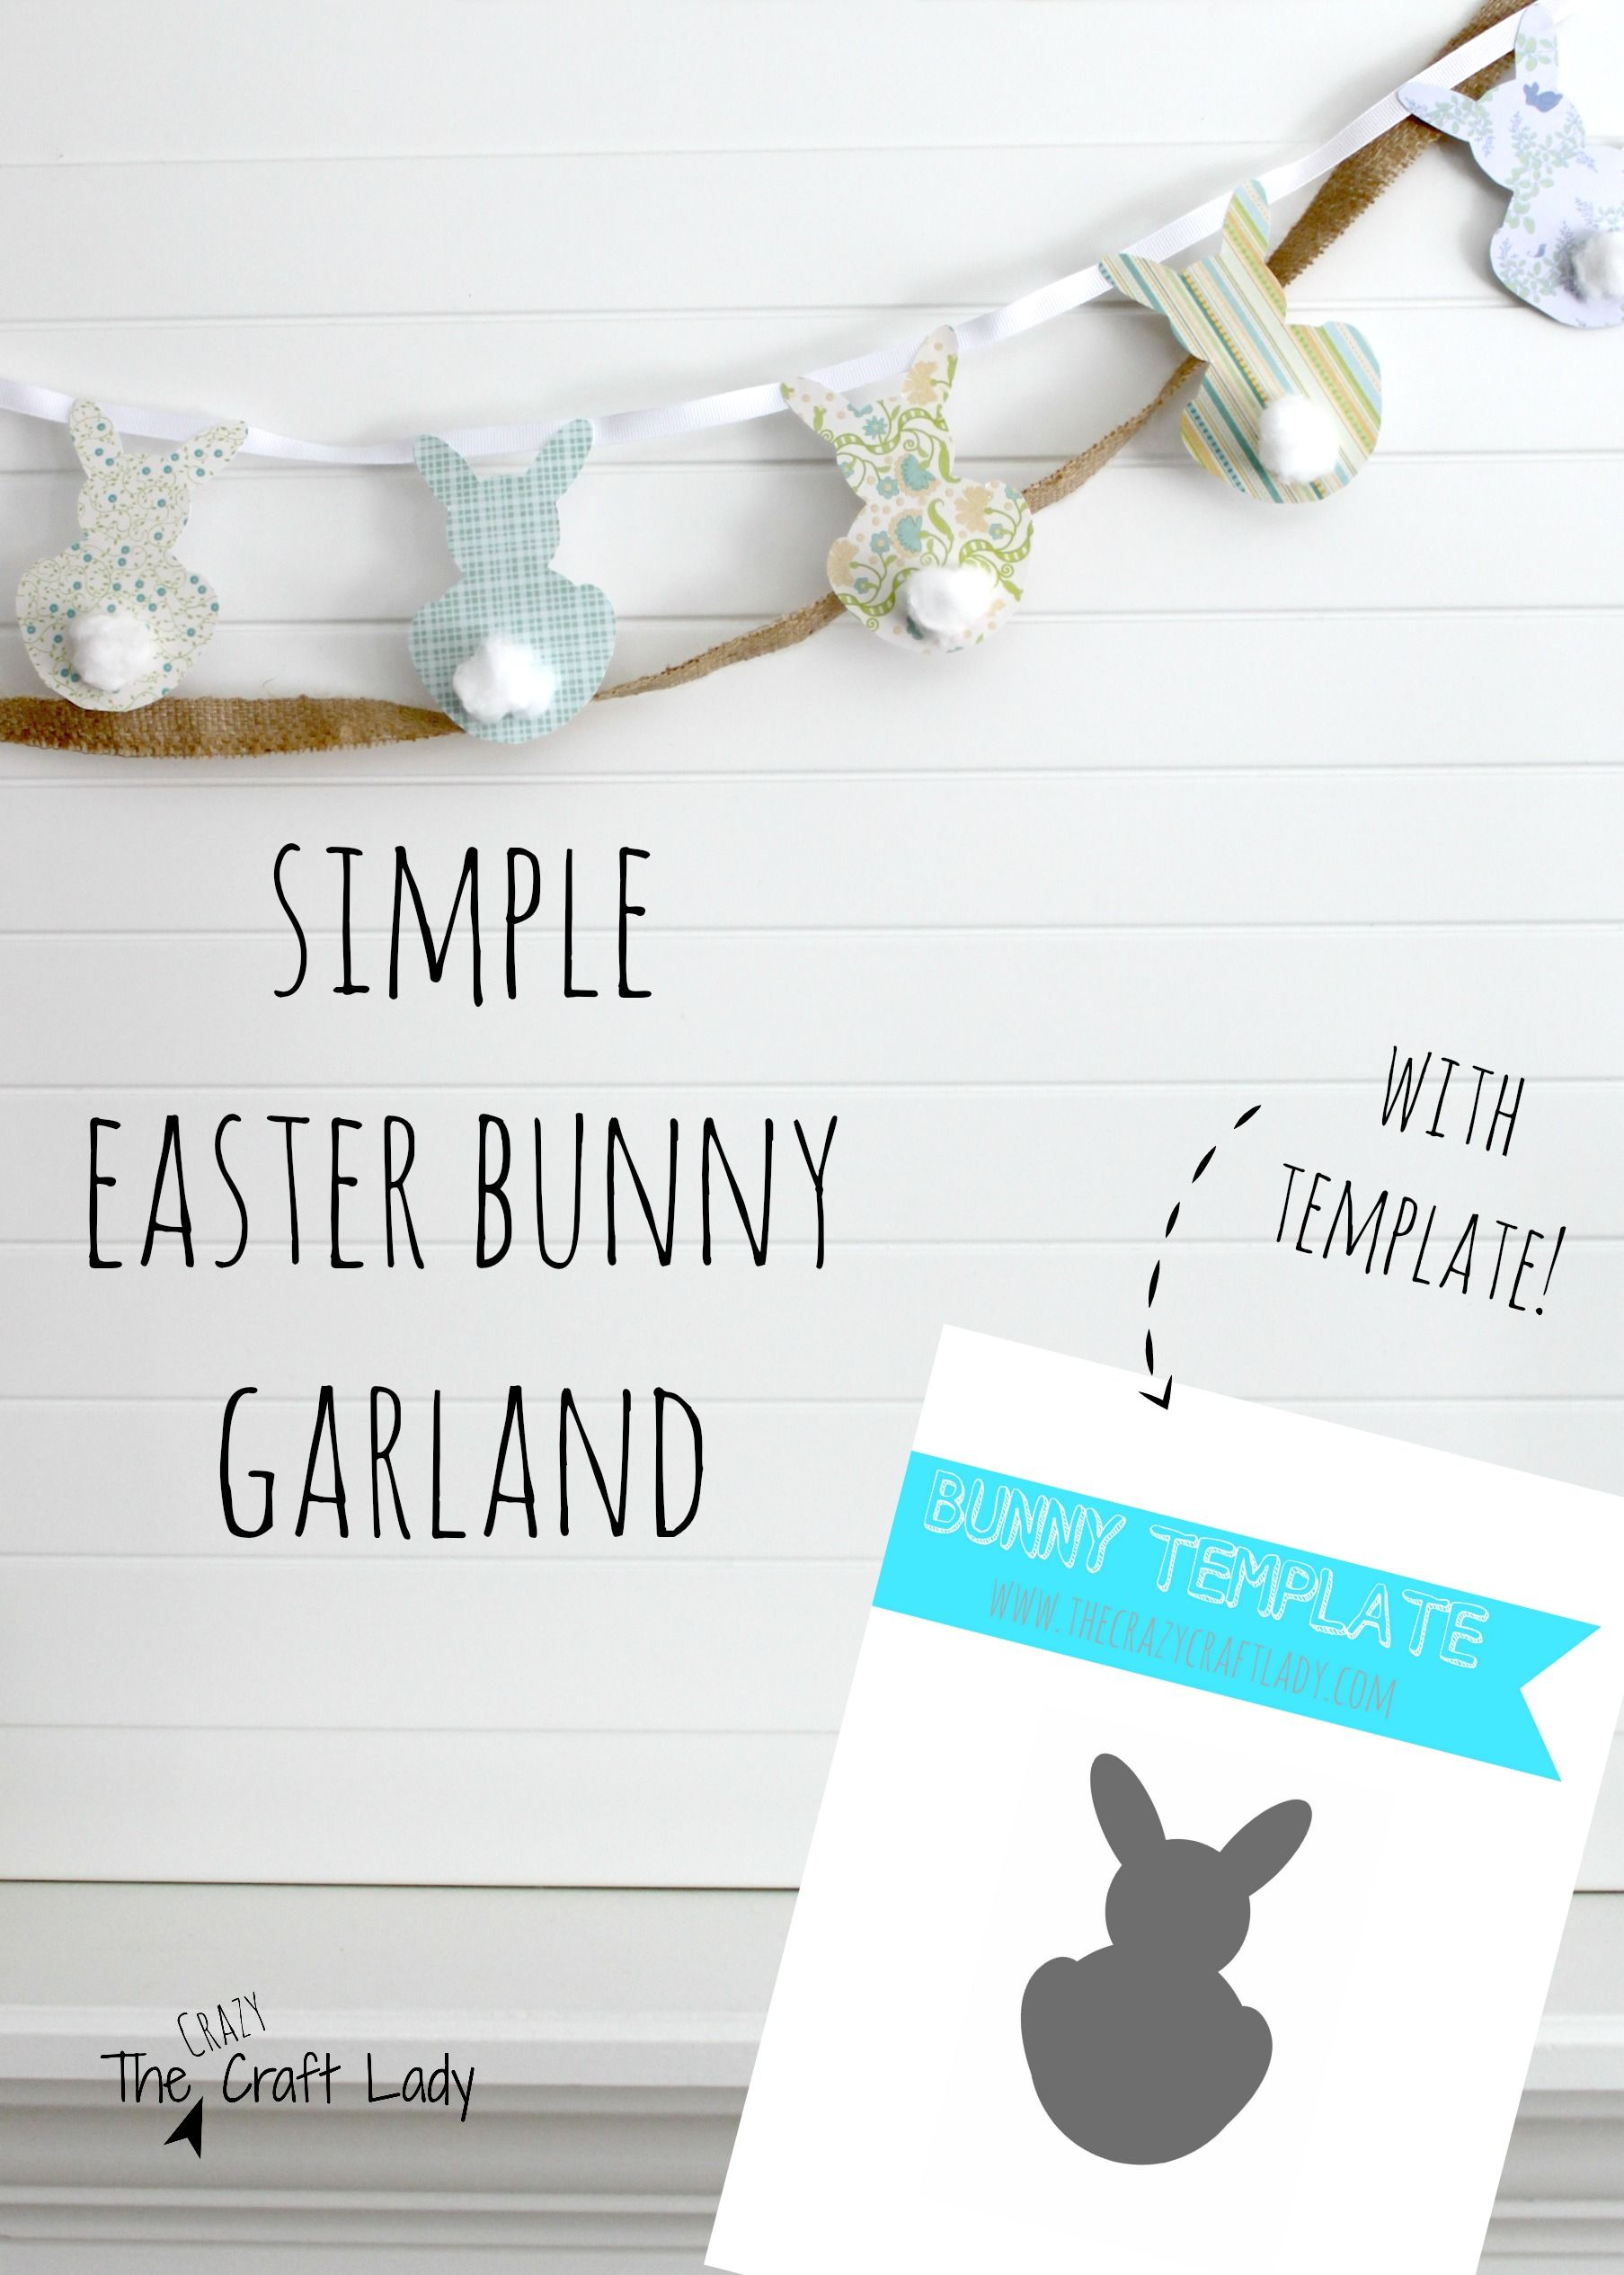 Simple Easter Bunny Garland PB Inspired Pinterest